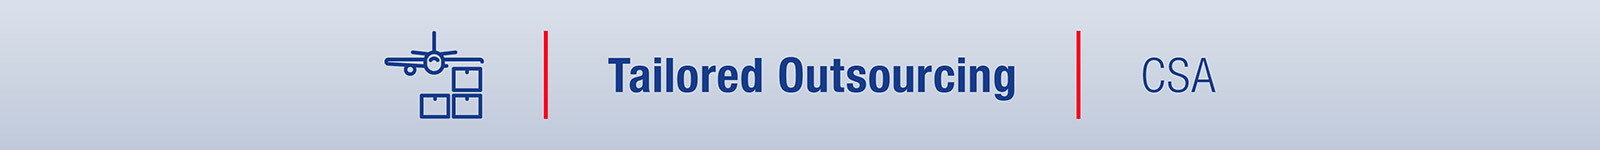 Fly Us Tailored Outsourcing CSA1